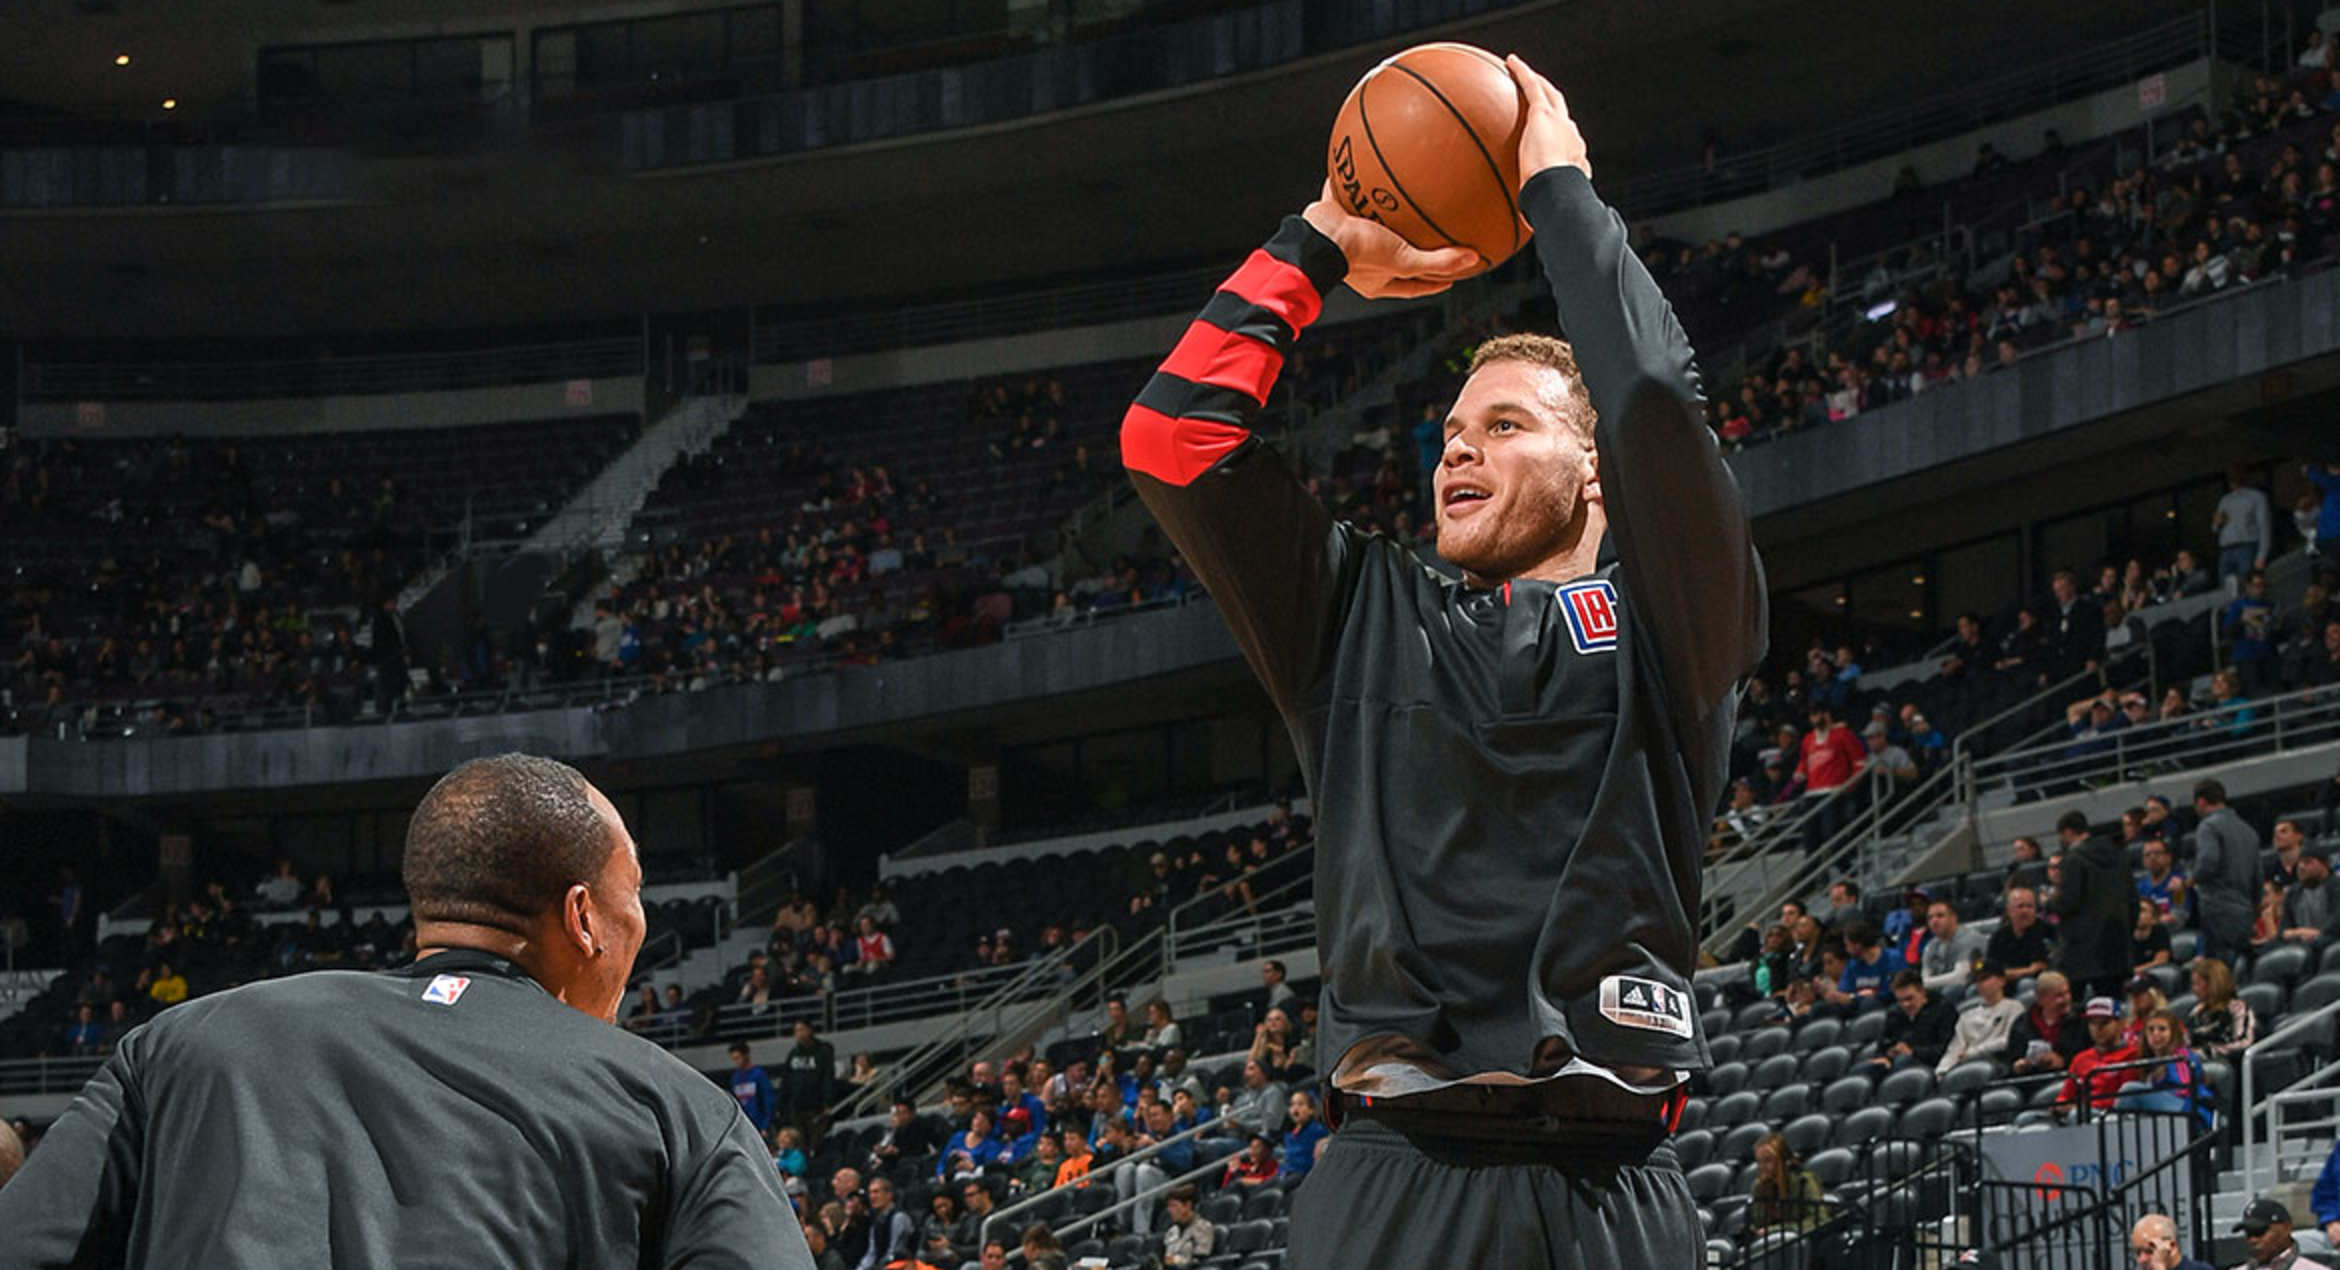 Blake Griffin Probable To Return Tuesday From Knee Surgery